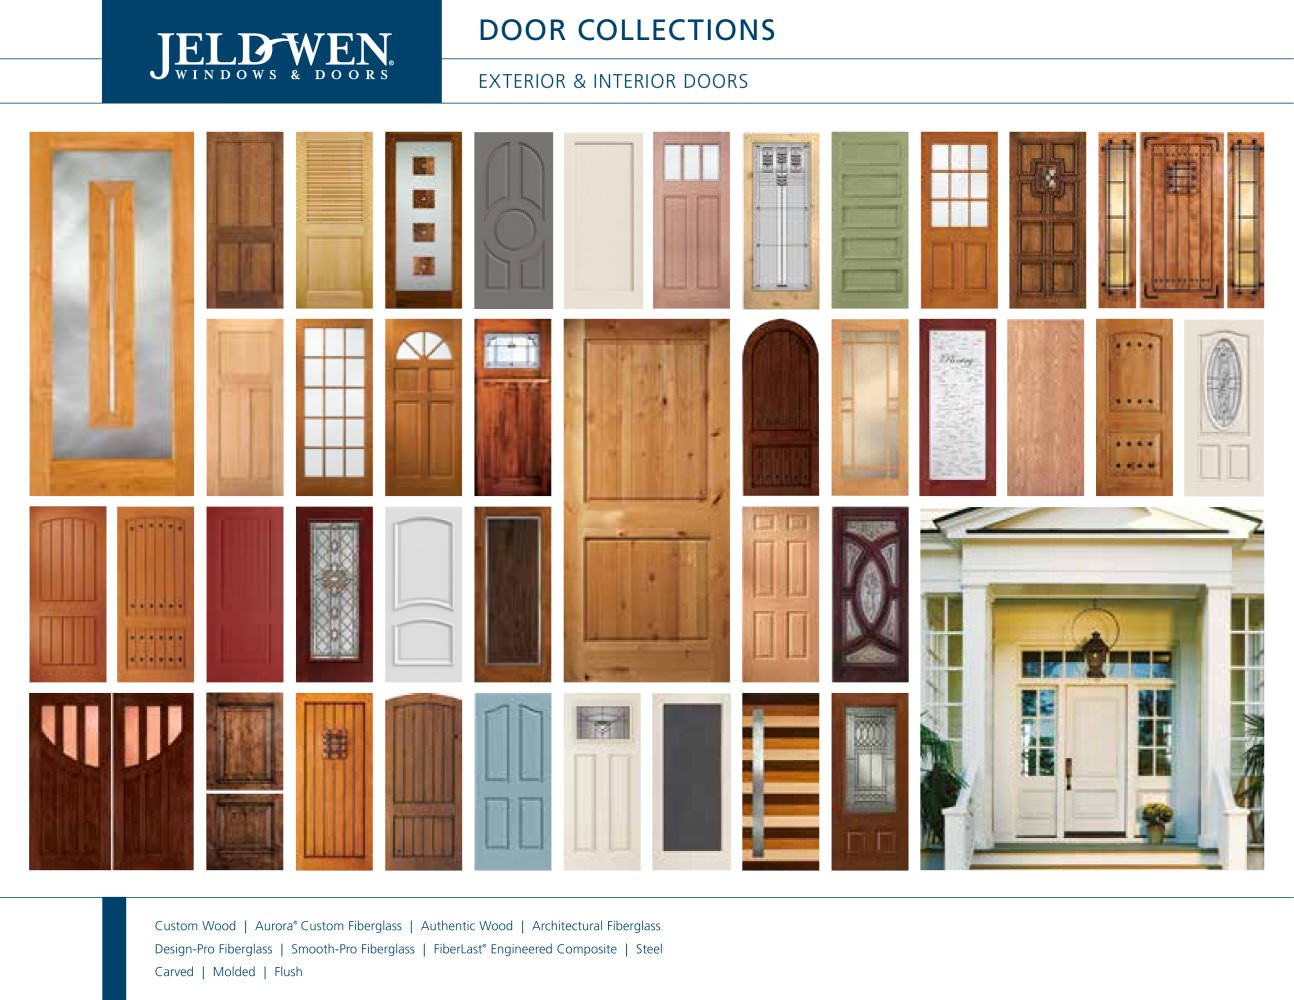 Door collections   1   55 Pages. Door collections   JELD WEN   PDF Catalogues   Documentation